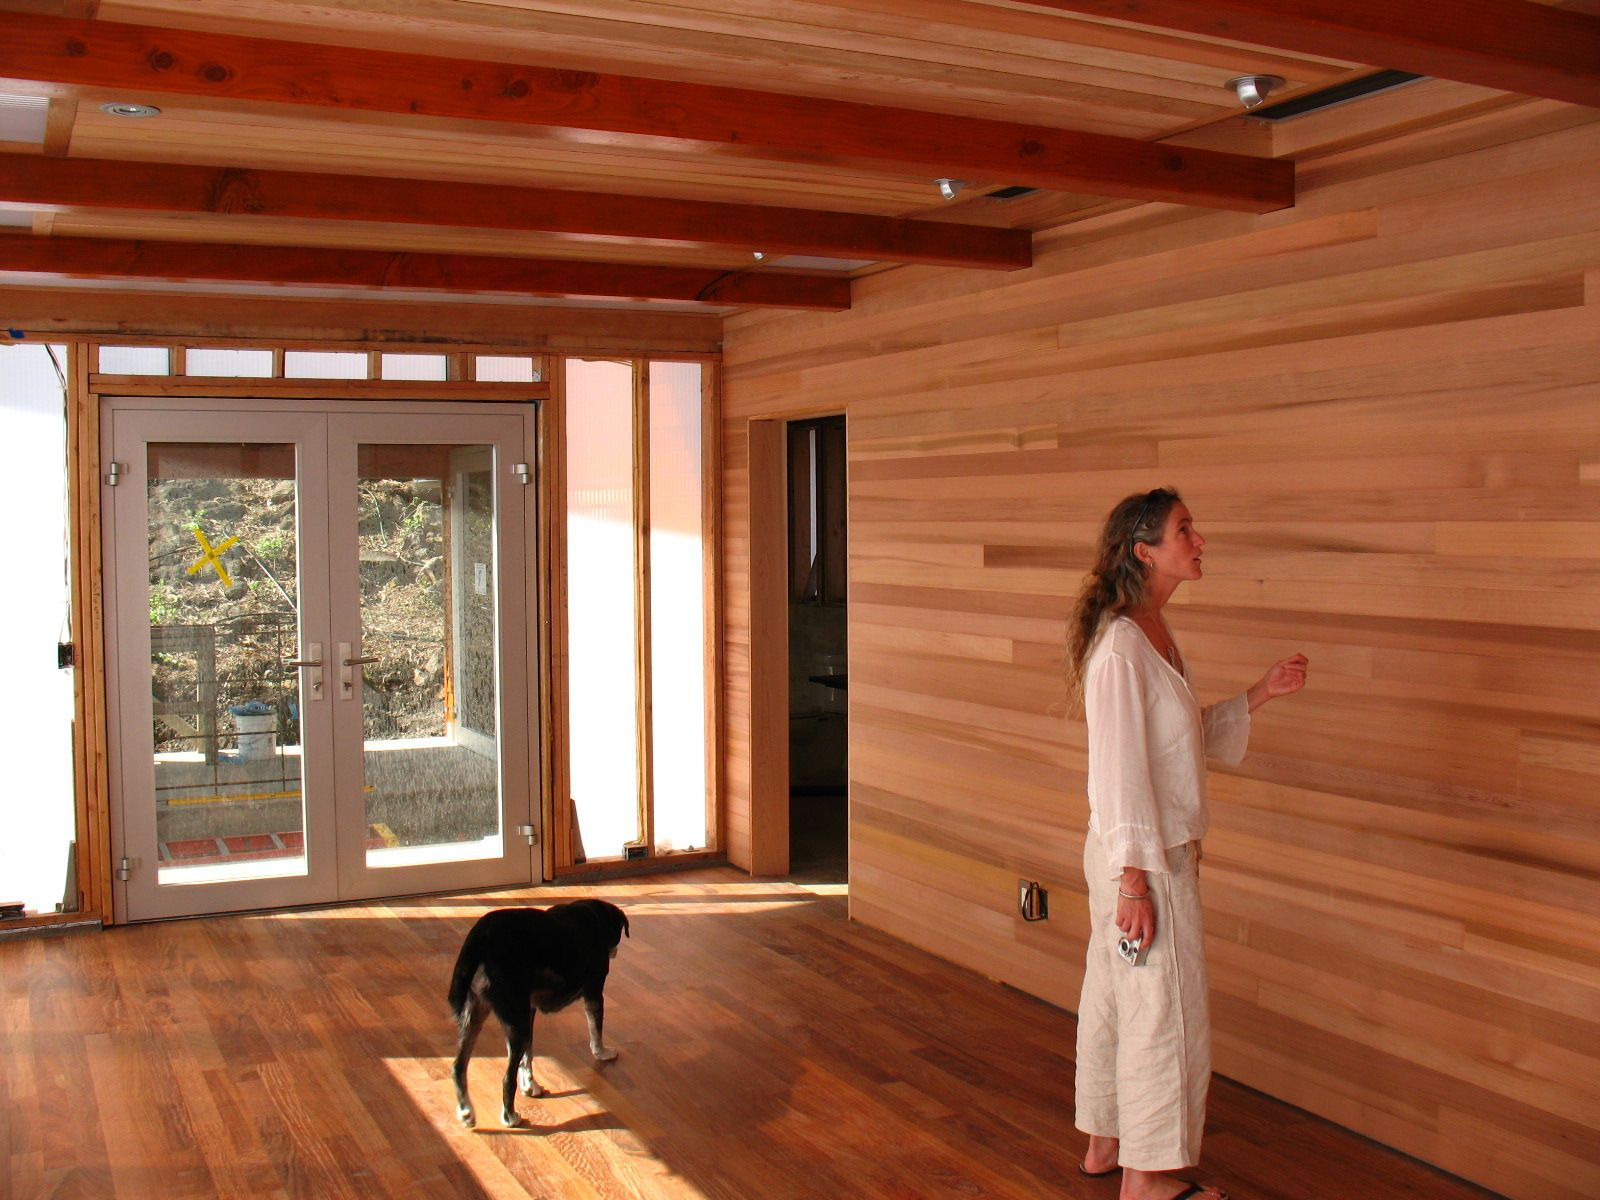 The Master Bedroom Is Lined With Shiplap Cedar Siding And Tongue Groove Ceiling As An Island Surrounded By Translucent Panels